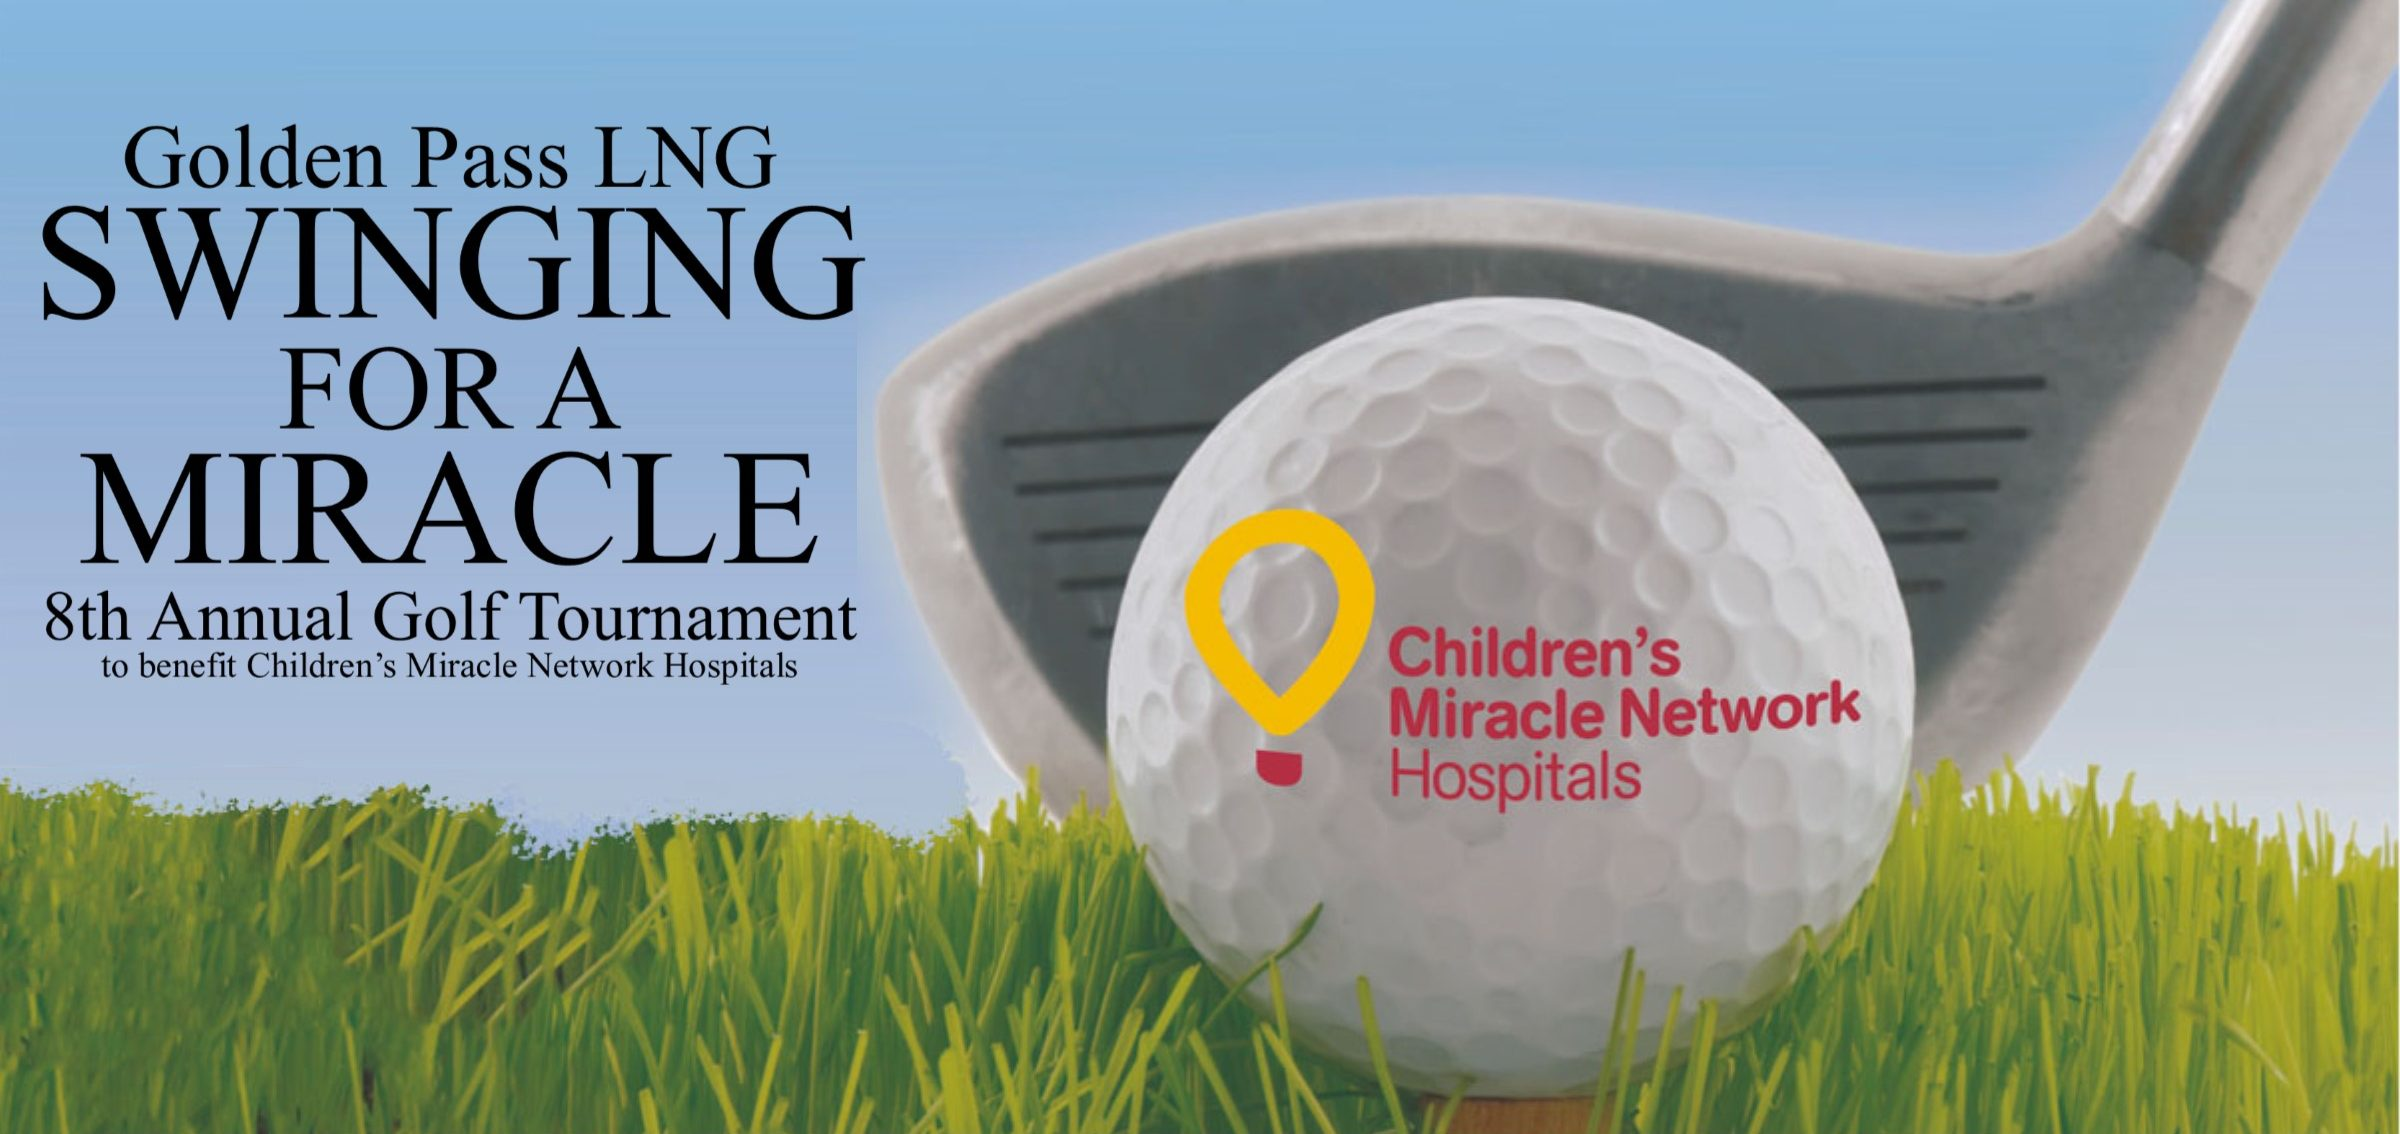 Swinging for a Miracle – Christus Southeast Texas Foundation